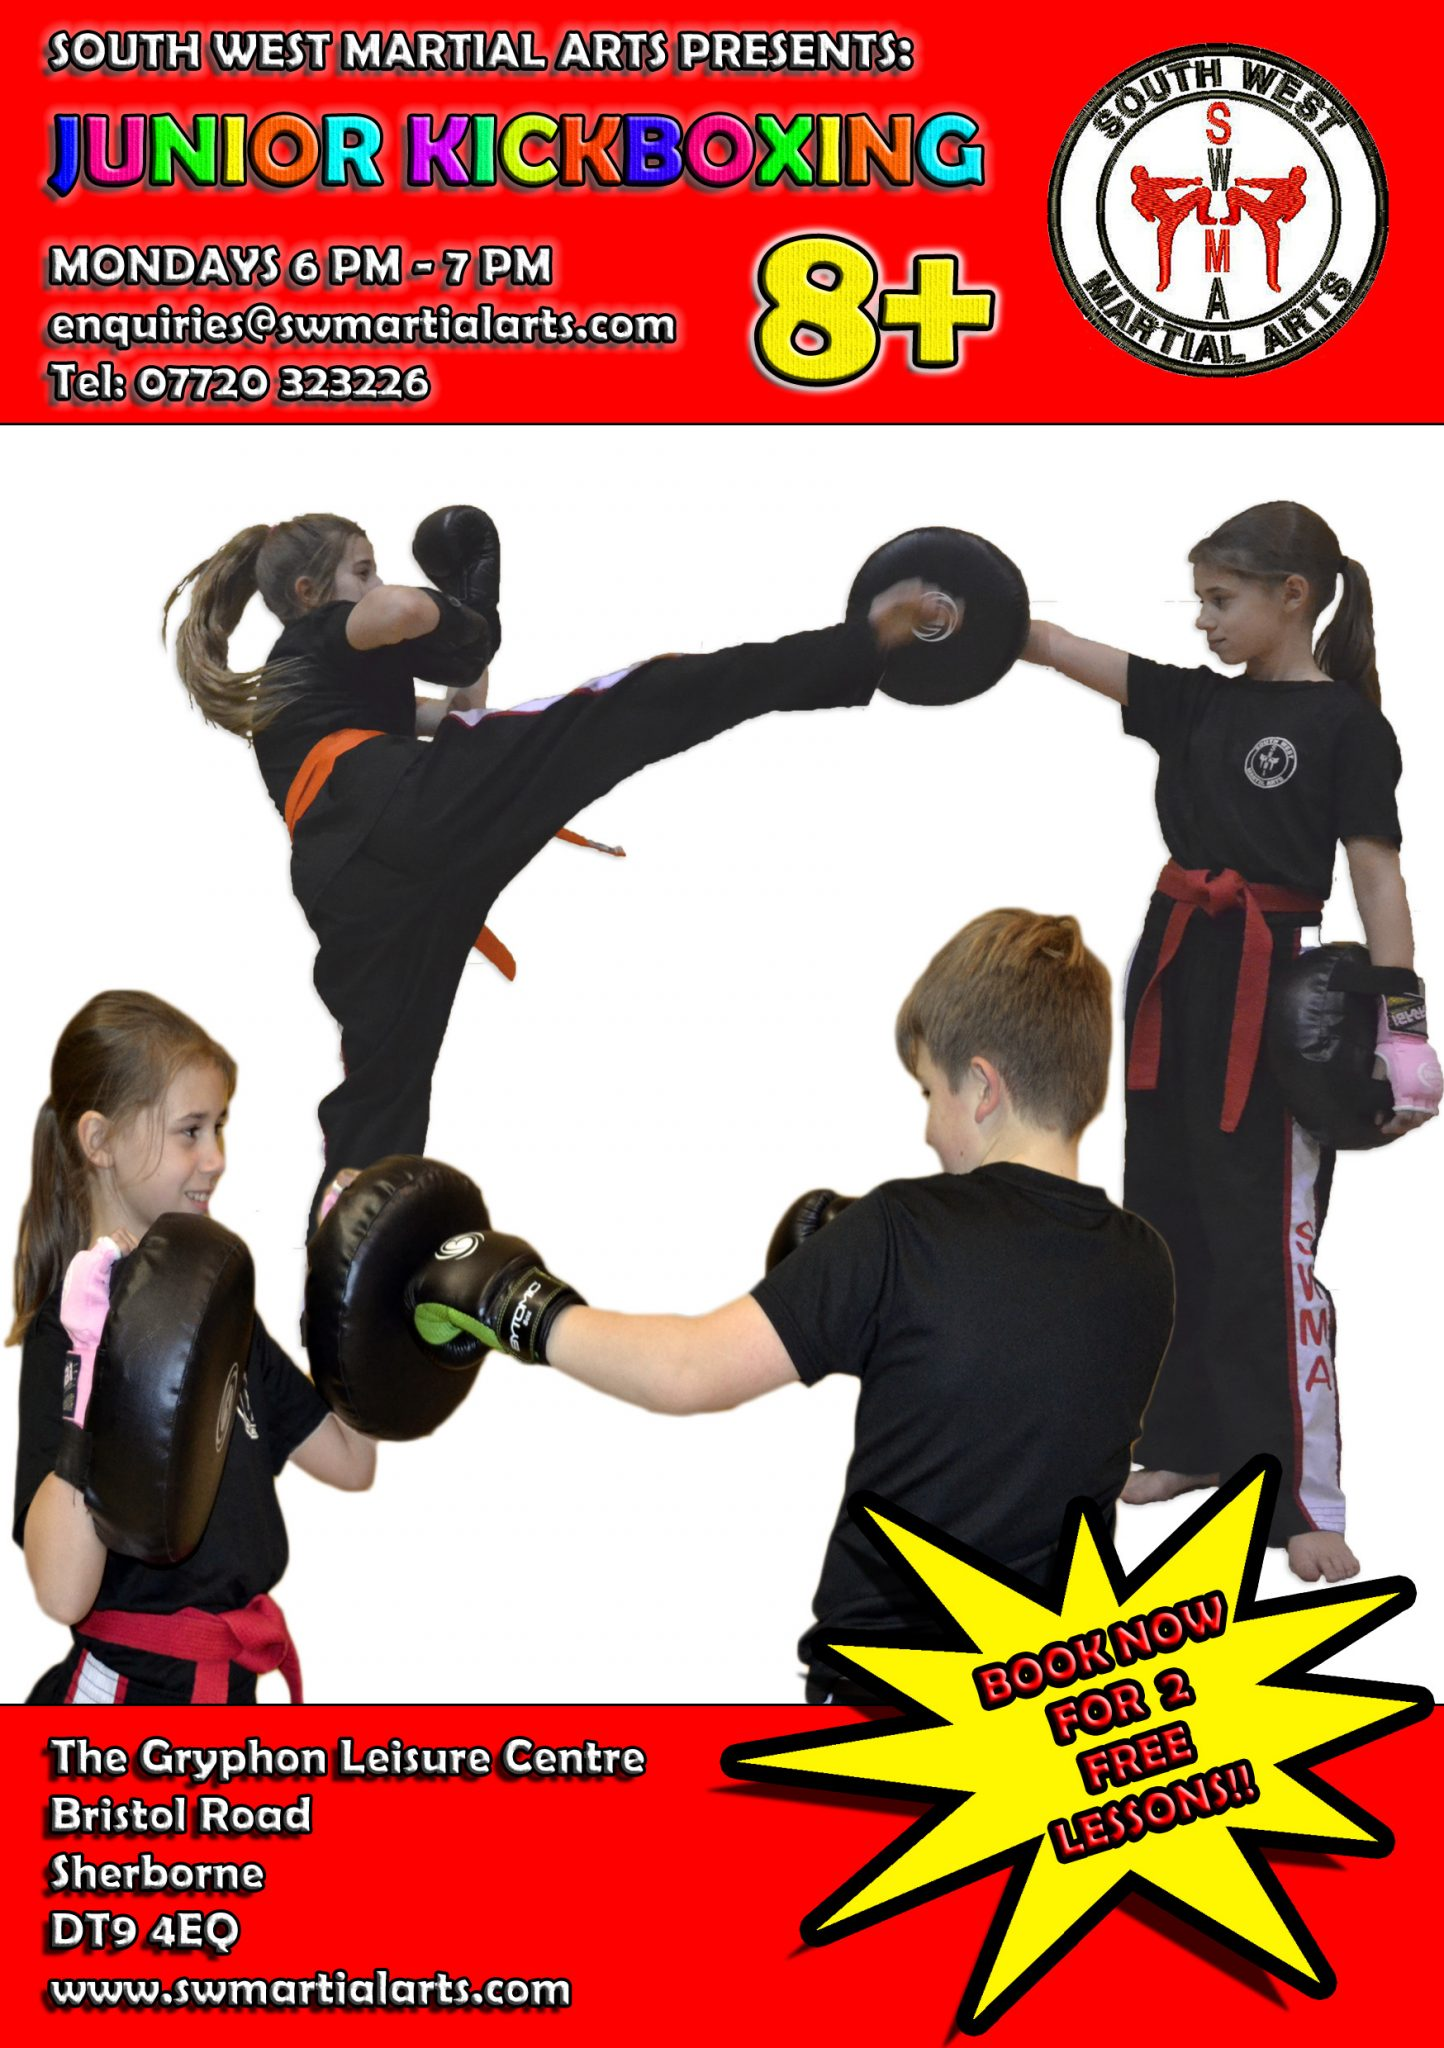 Junior Kickboxing